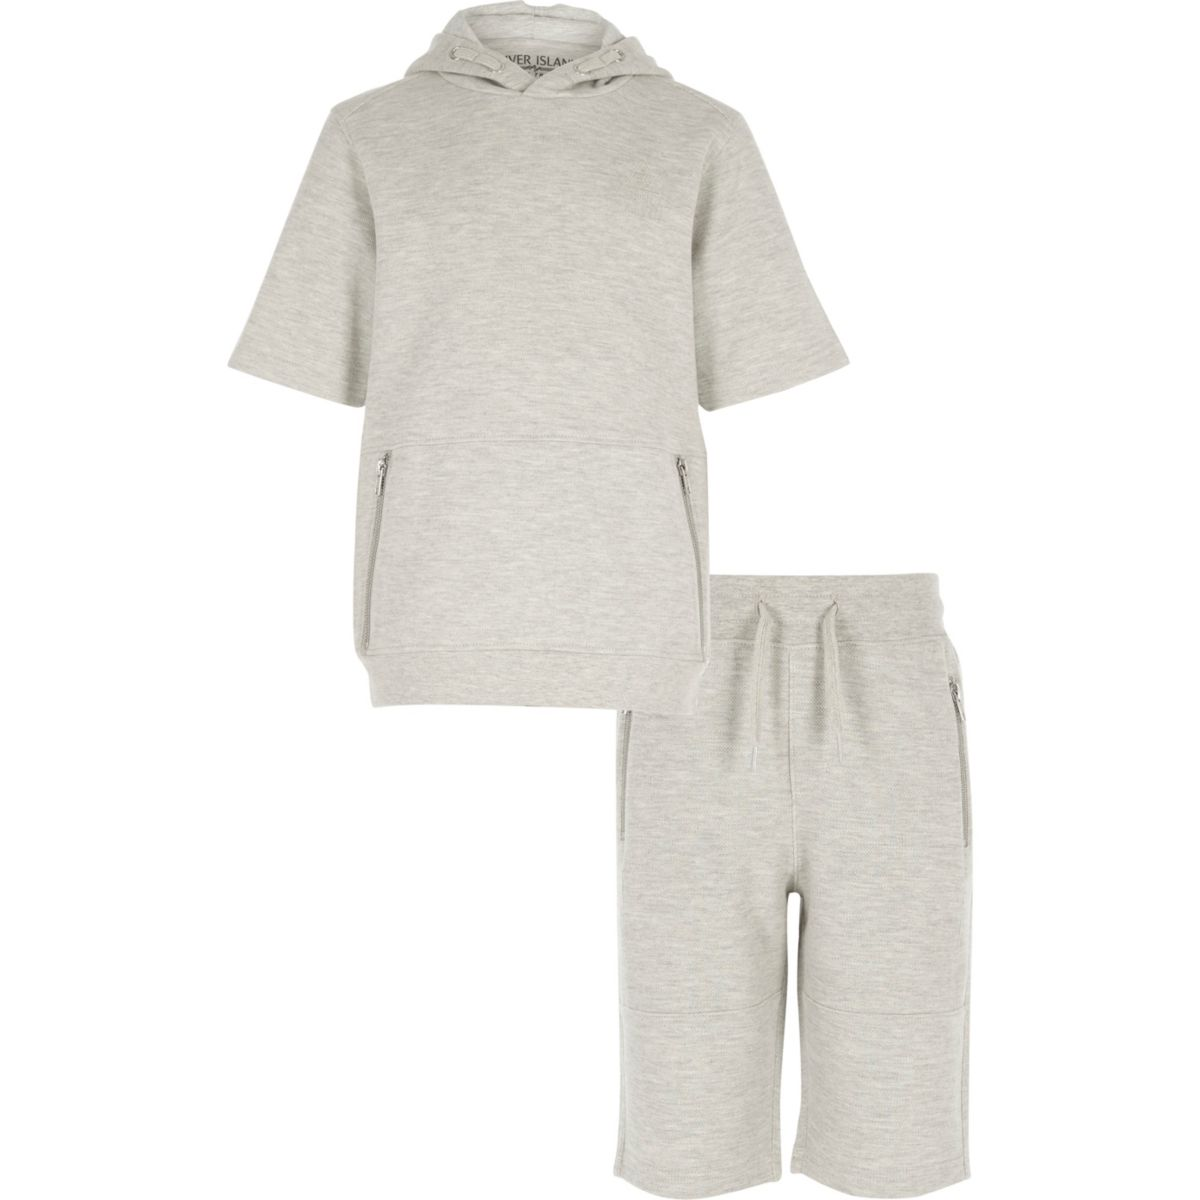 Boys grey short sleeve textured hoodie outfit